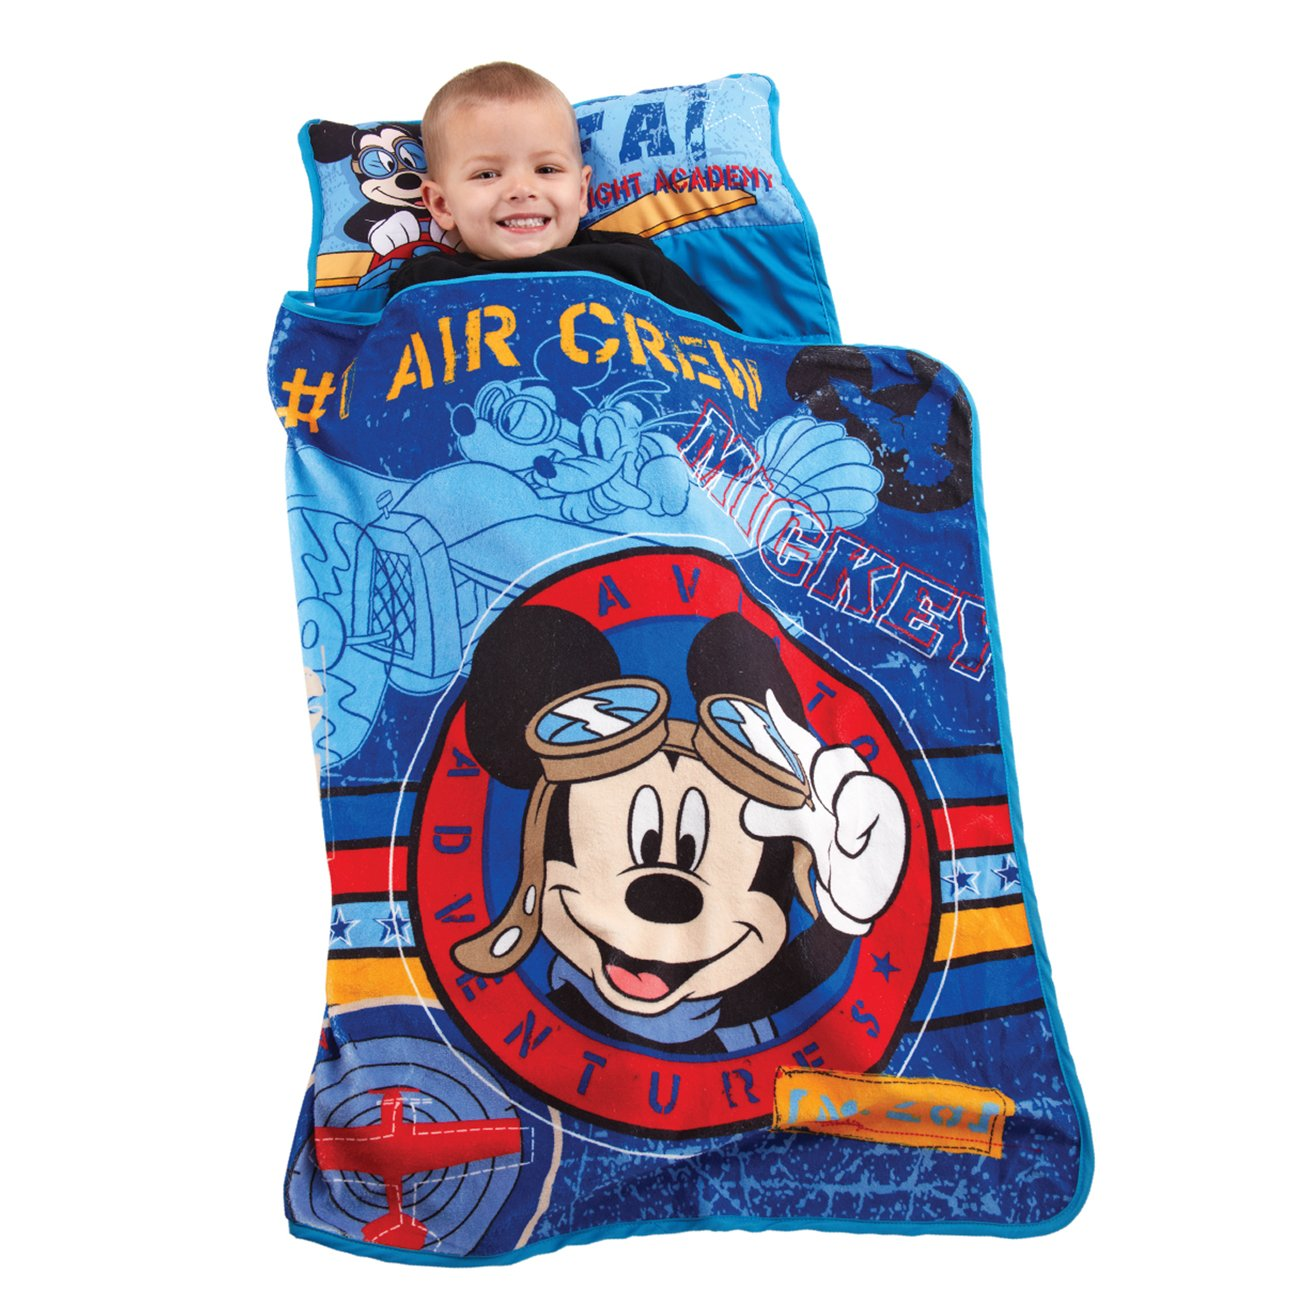 Disney Mickey's Toddler Rolled Nap Mat, Flight Academy by Disney